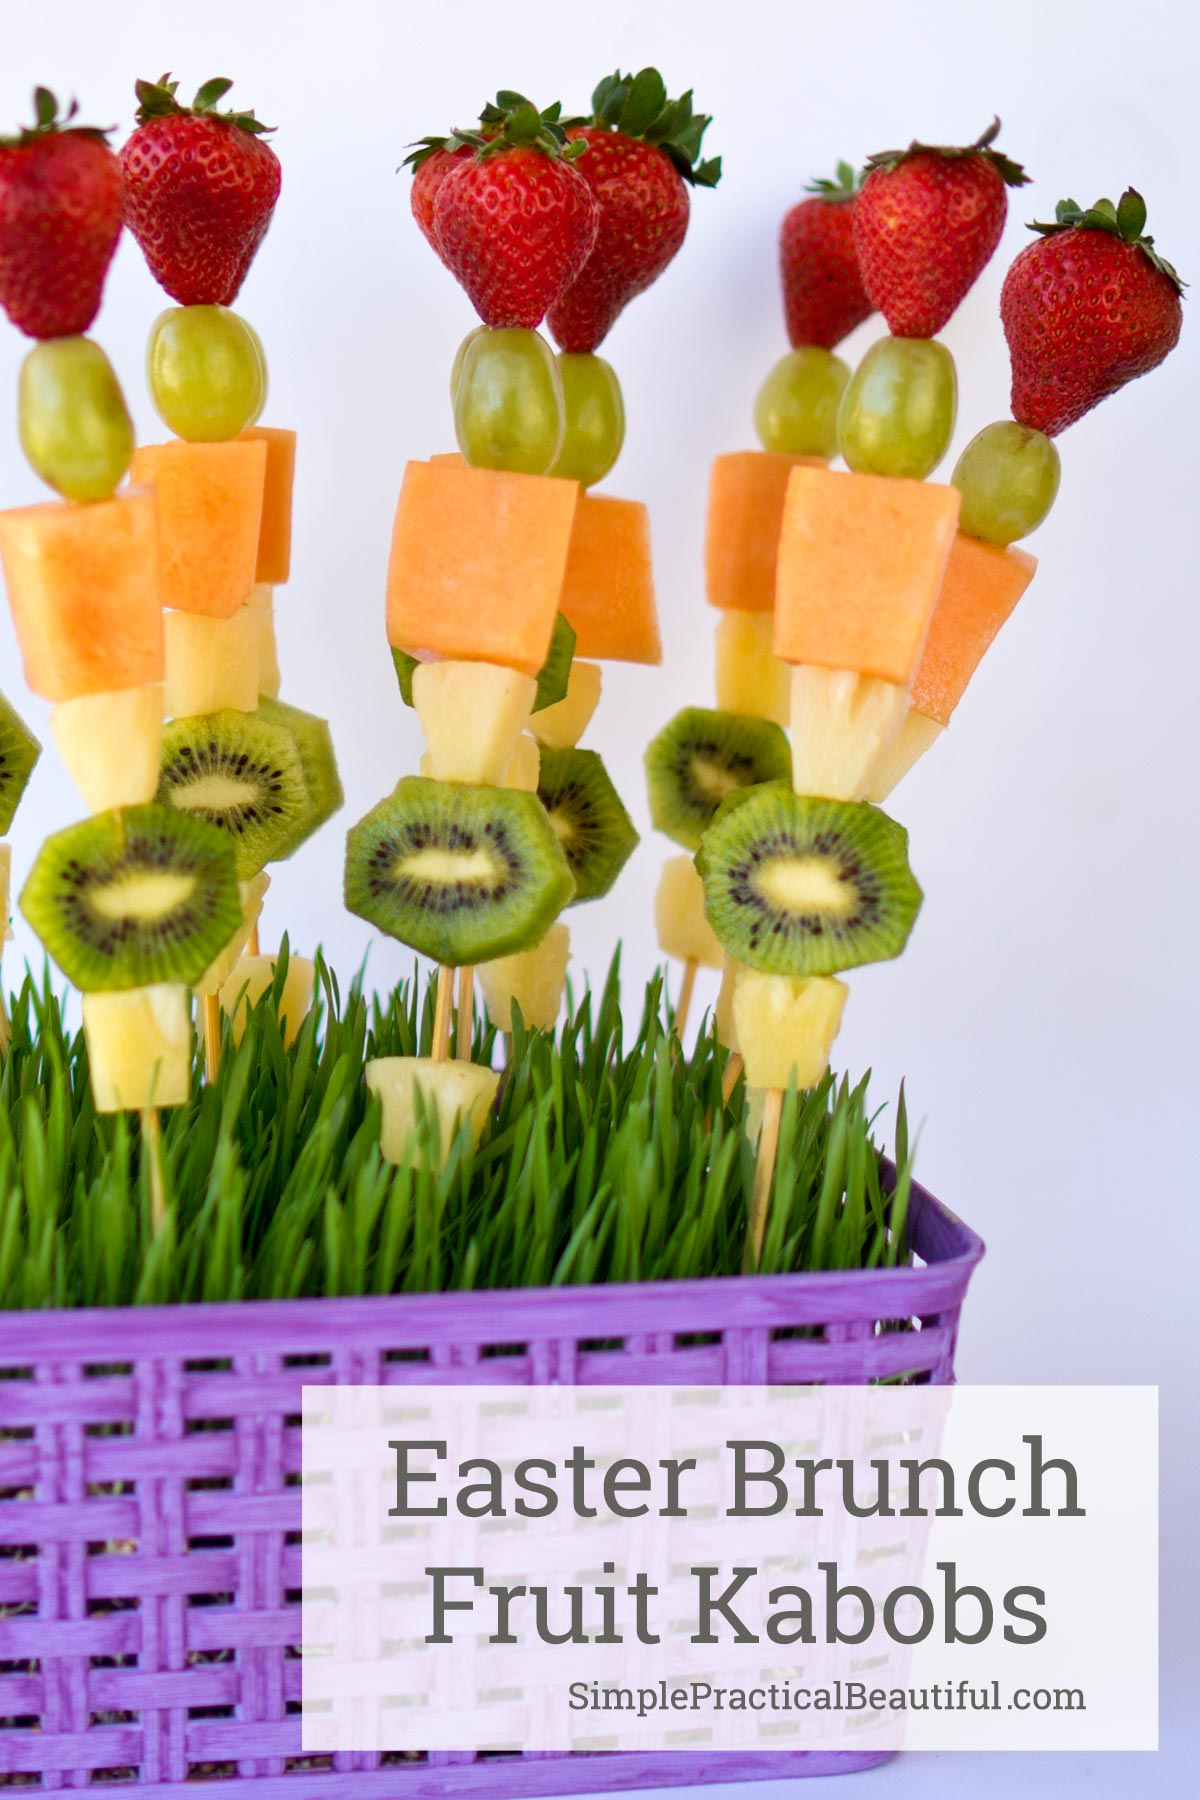 Serve Easter brunch fruit kabobs in a basket filled with wheat grass | brunch idea